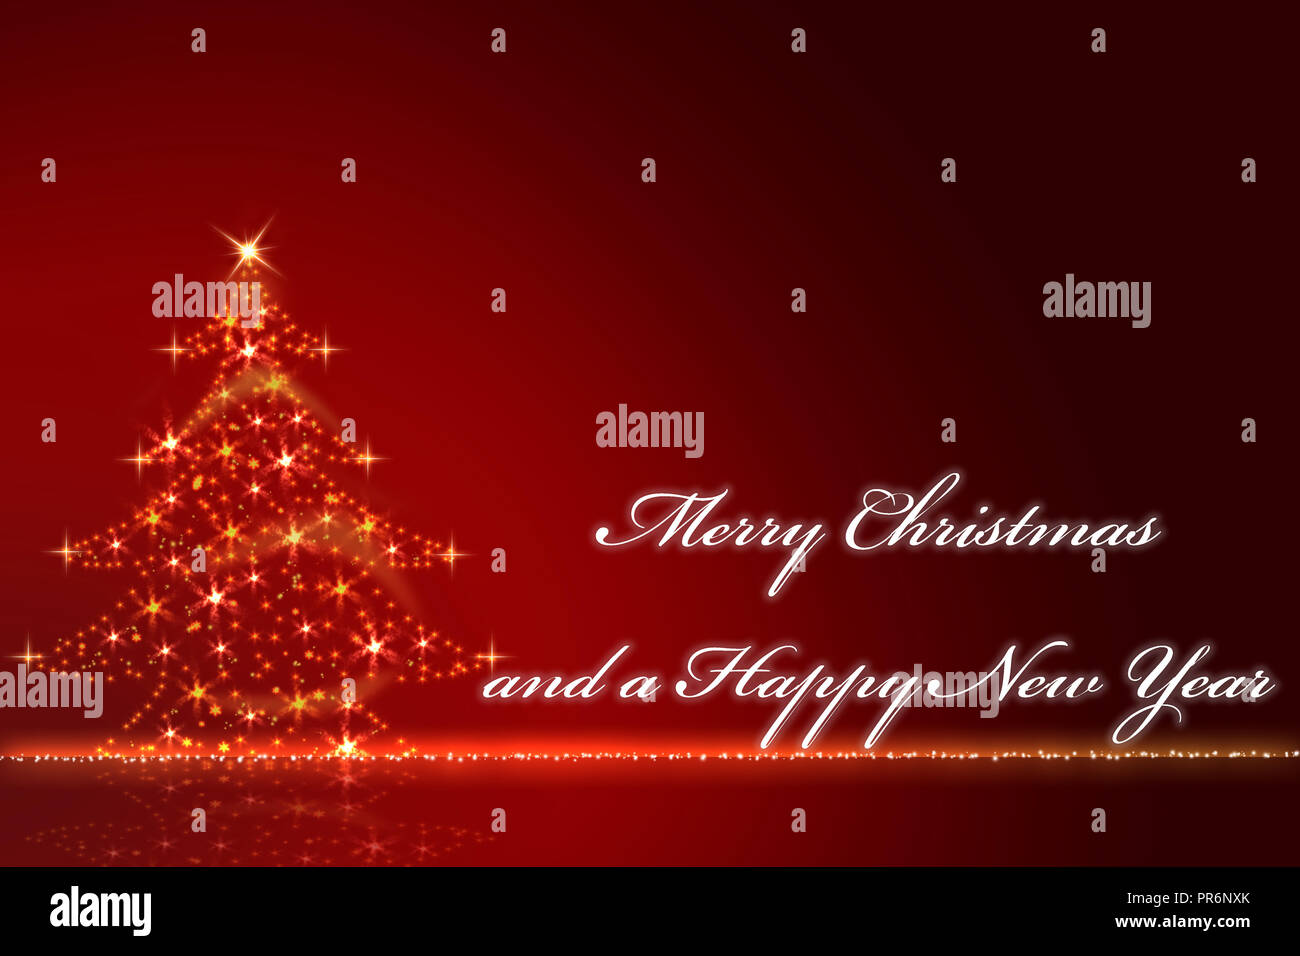 gold glittering Christmas tree against a red blurred background with the text Merry Christmas and a Happy New Year - Stock Image